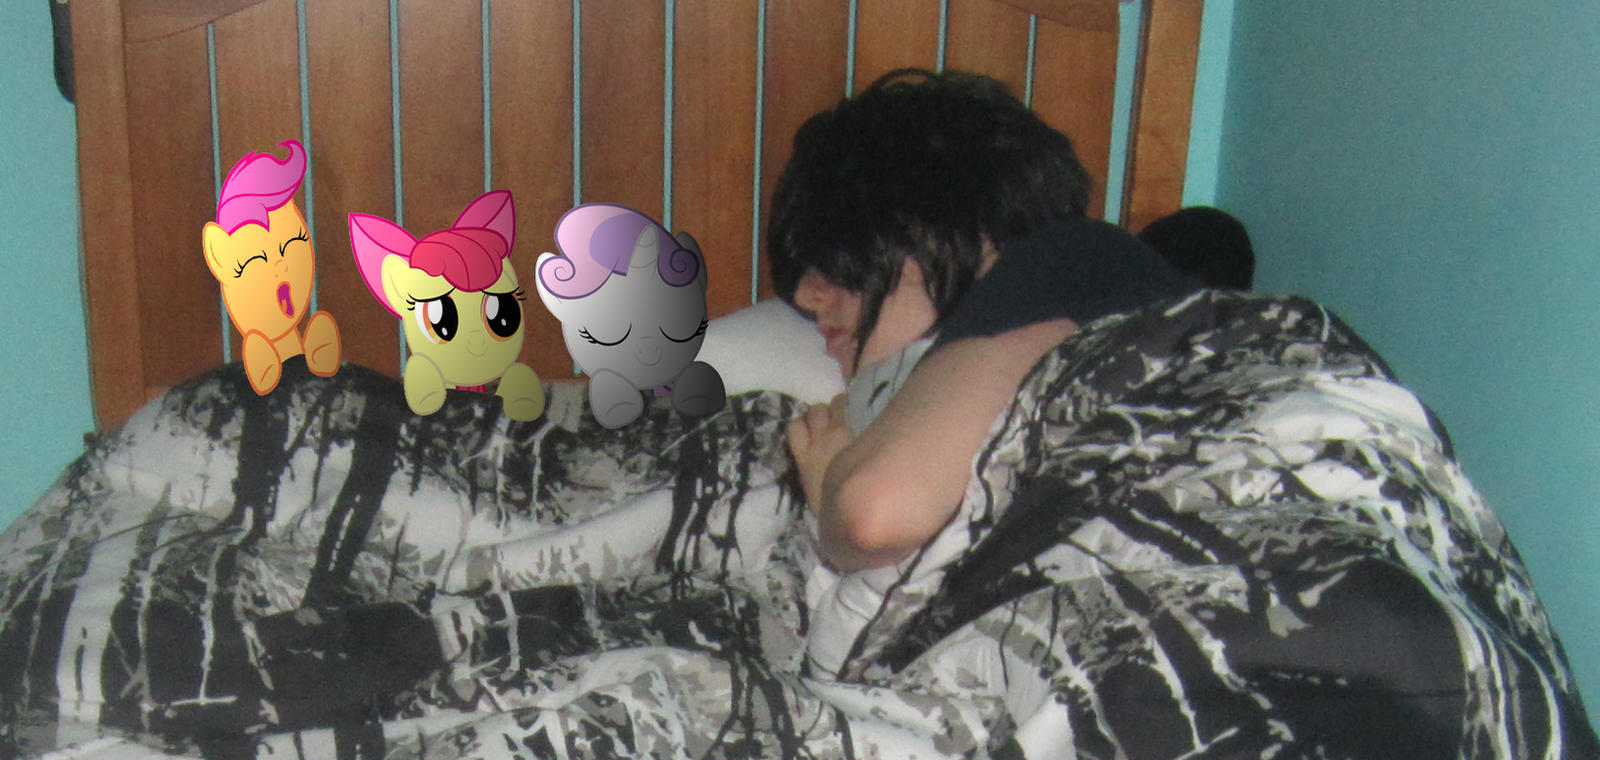 Sleeping with the CMC by MetalGriffen69 Sleeping with the CMC by  MetalGriffen69. Sleeping with the CMC by MetalGriffen69 on DeviantArt